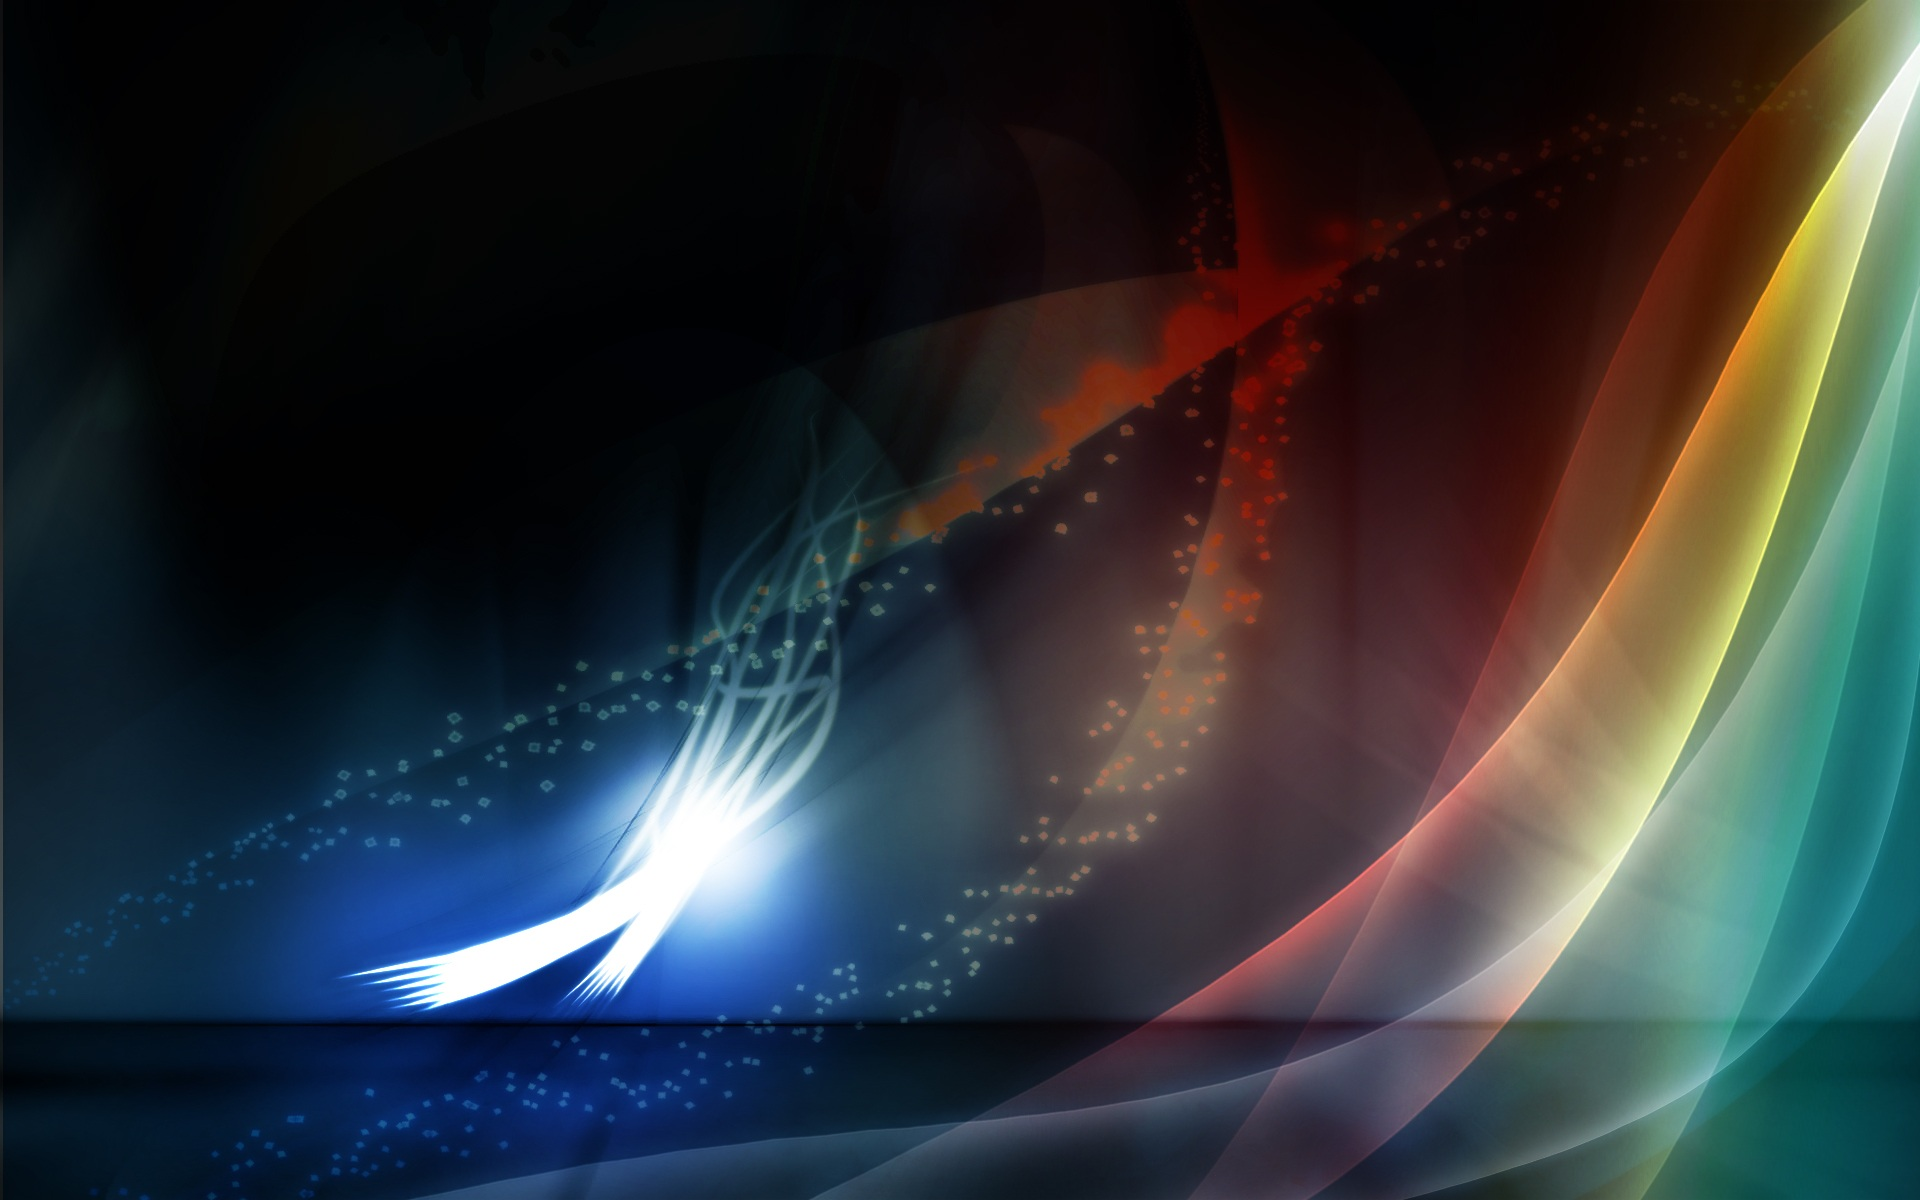 Wallpaper widescreen abstract abstract widescreen widescreen abstract voltagebd Image collections